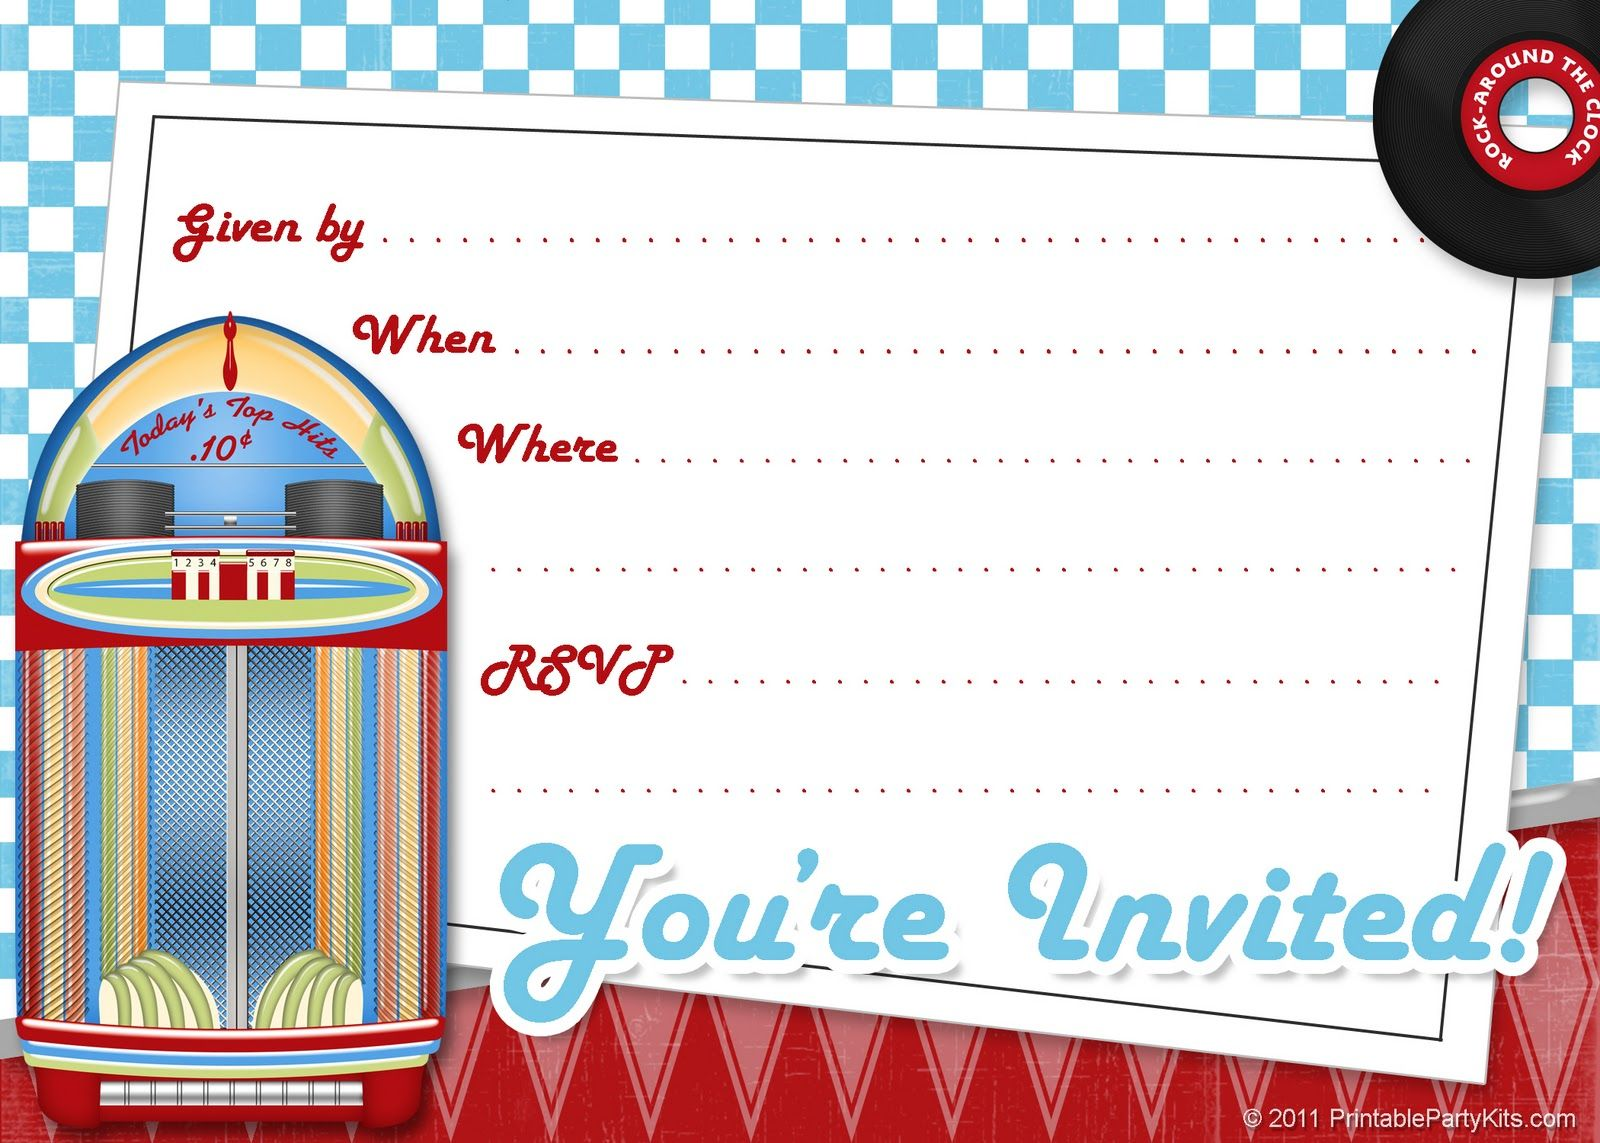 Free Printable Party Invitations Free Printable 1950s Party – 1950s Party Invitations